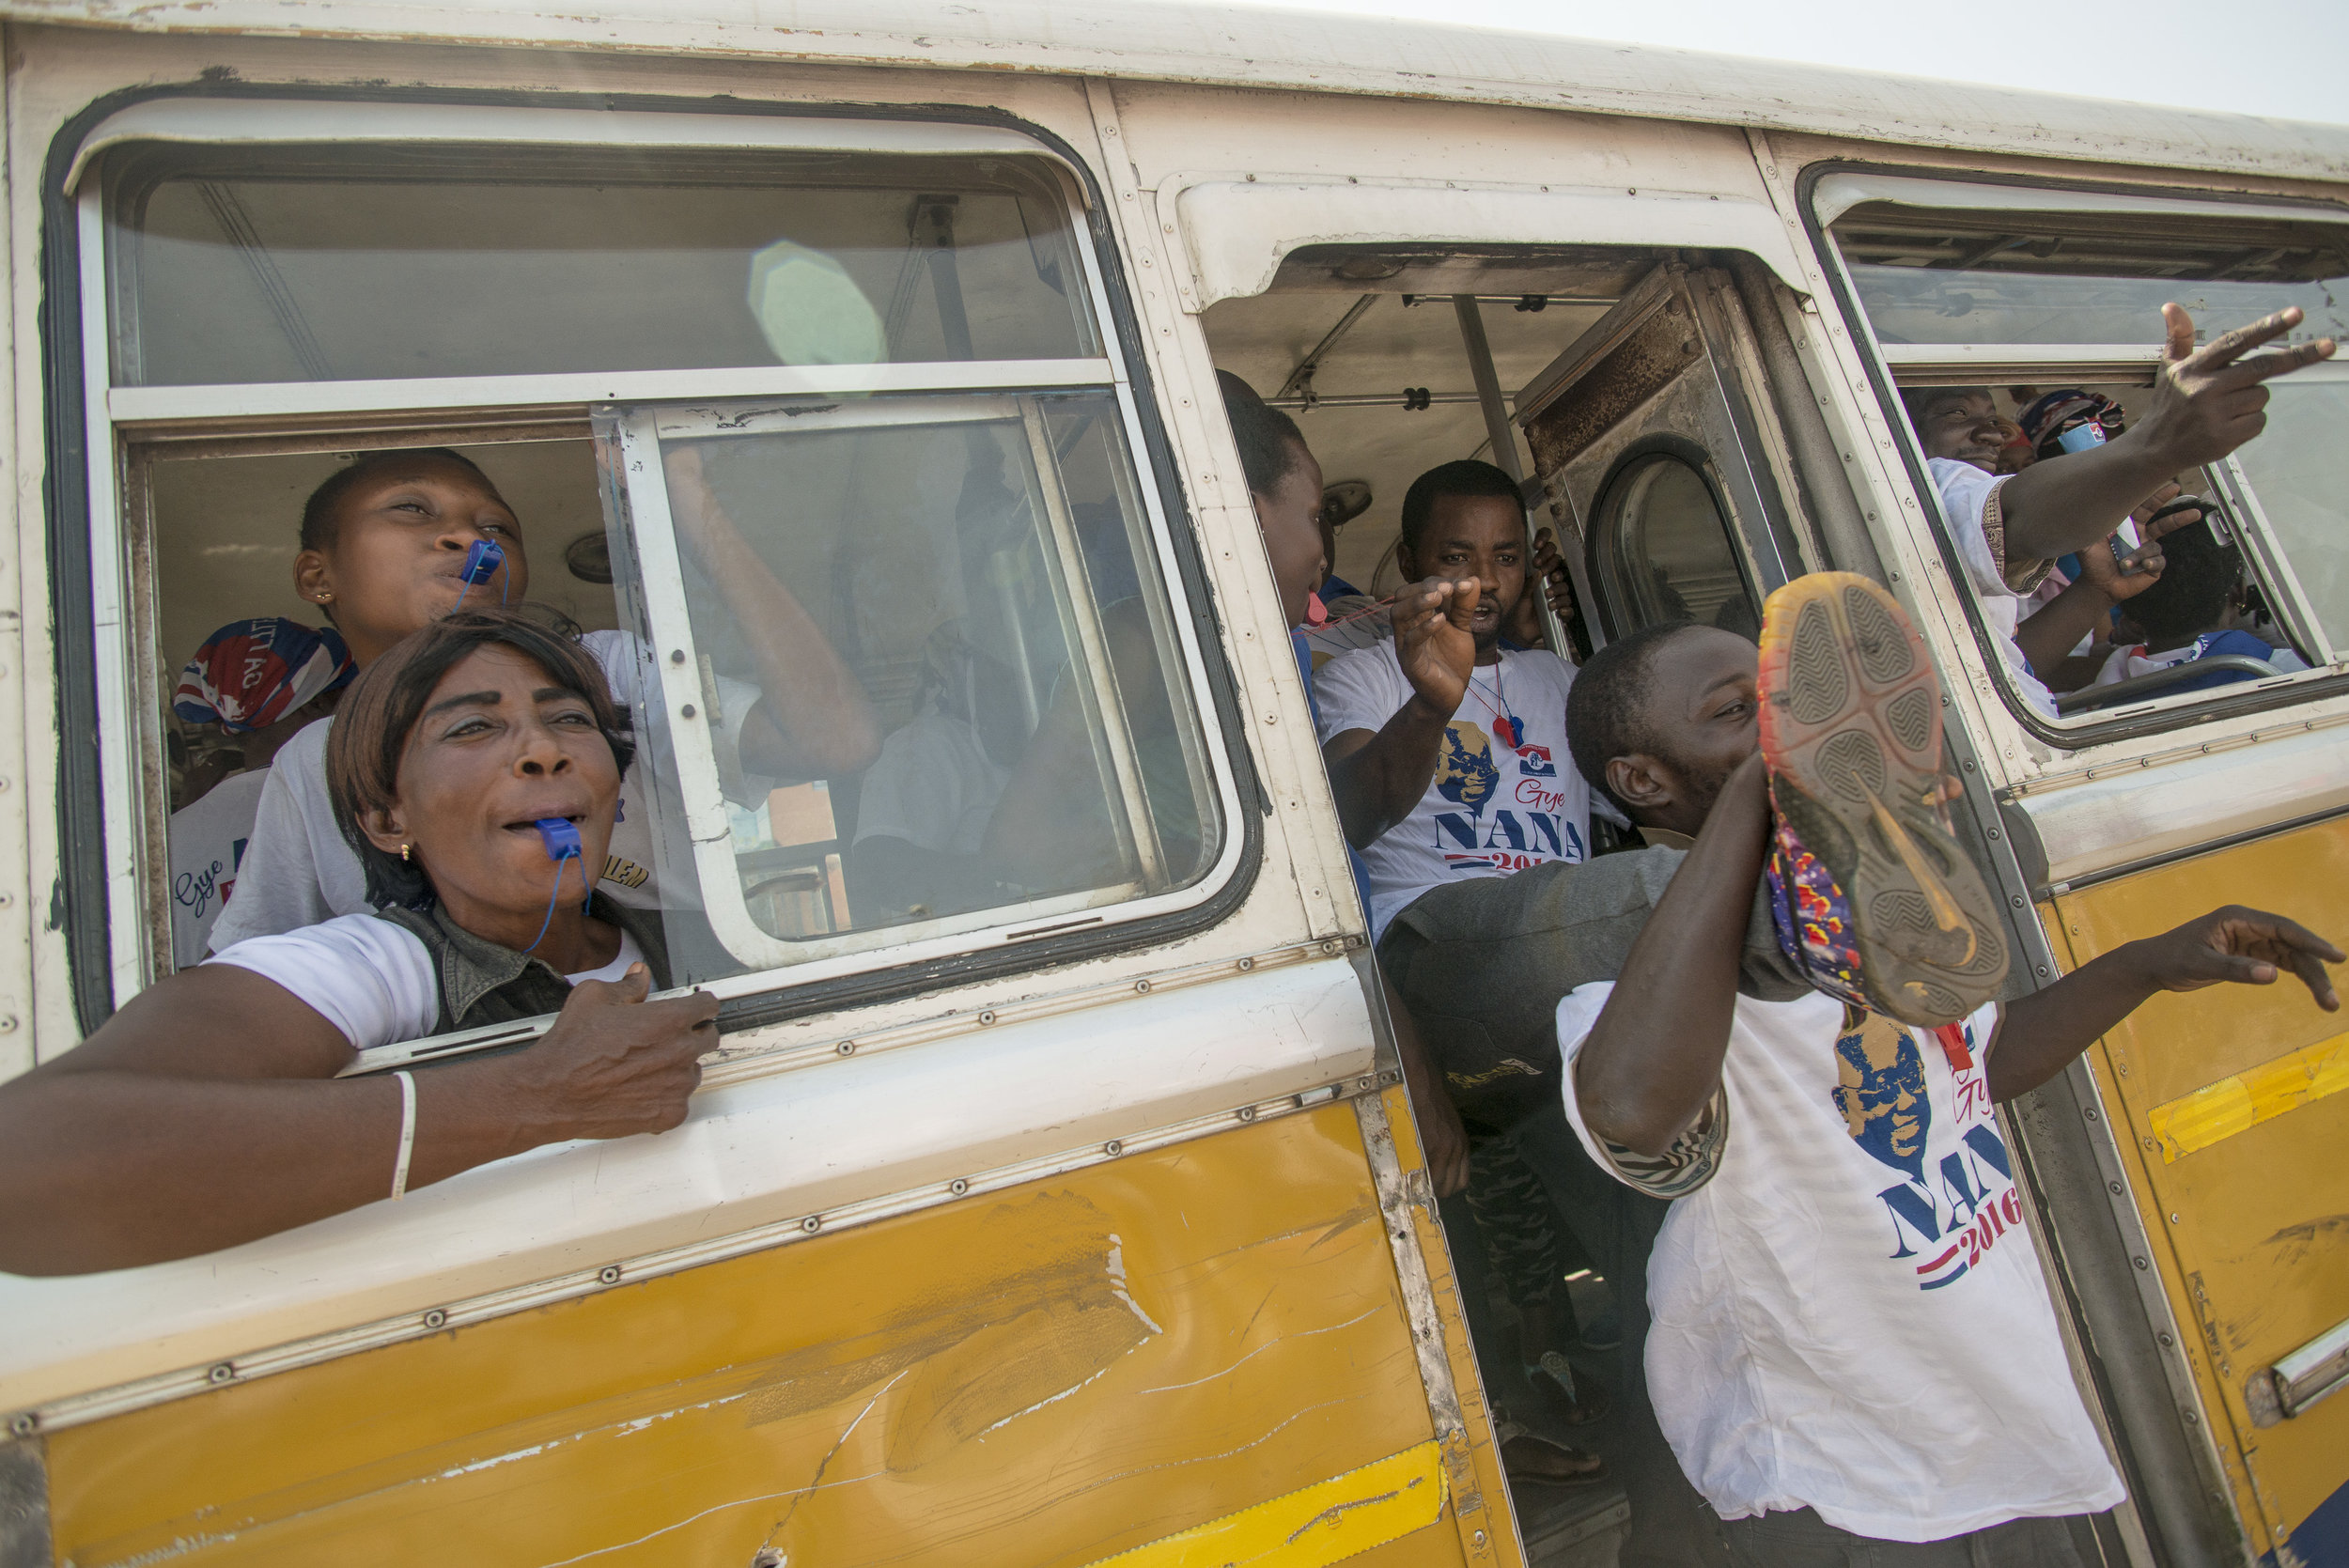 NPP (New Patriotic Party) supporters heading to the last rally, Grand Finale, in Accra ahead the December 7th General Election